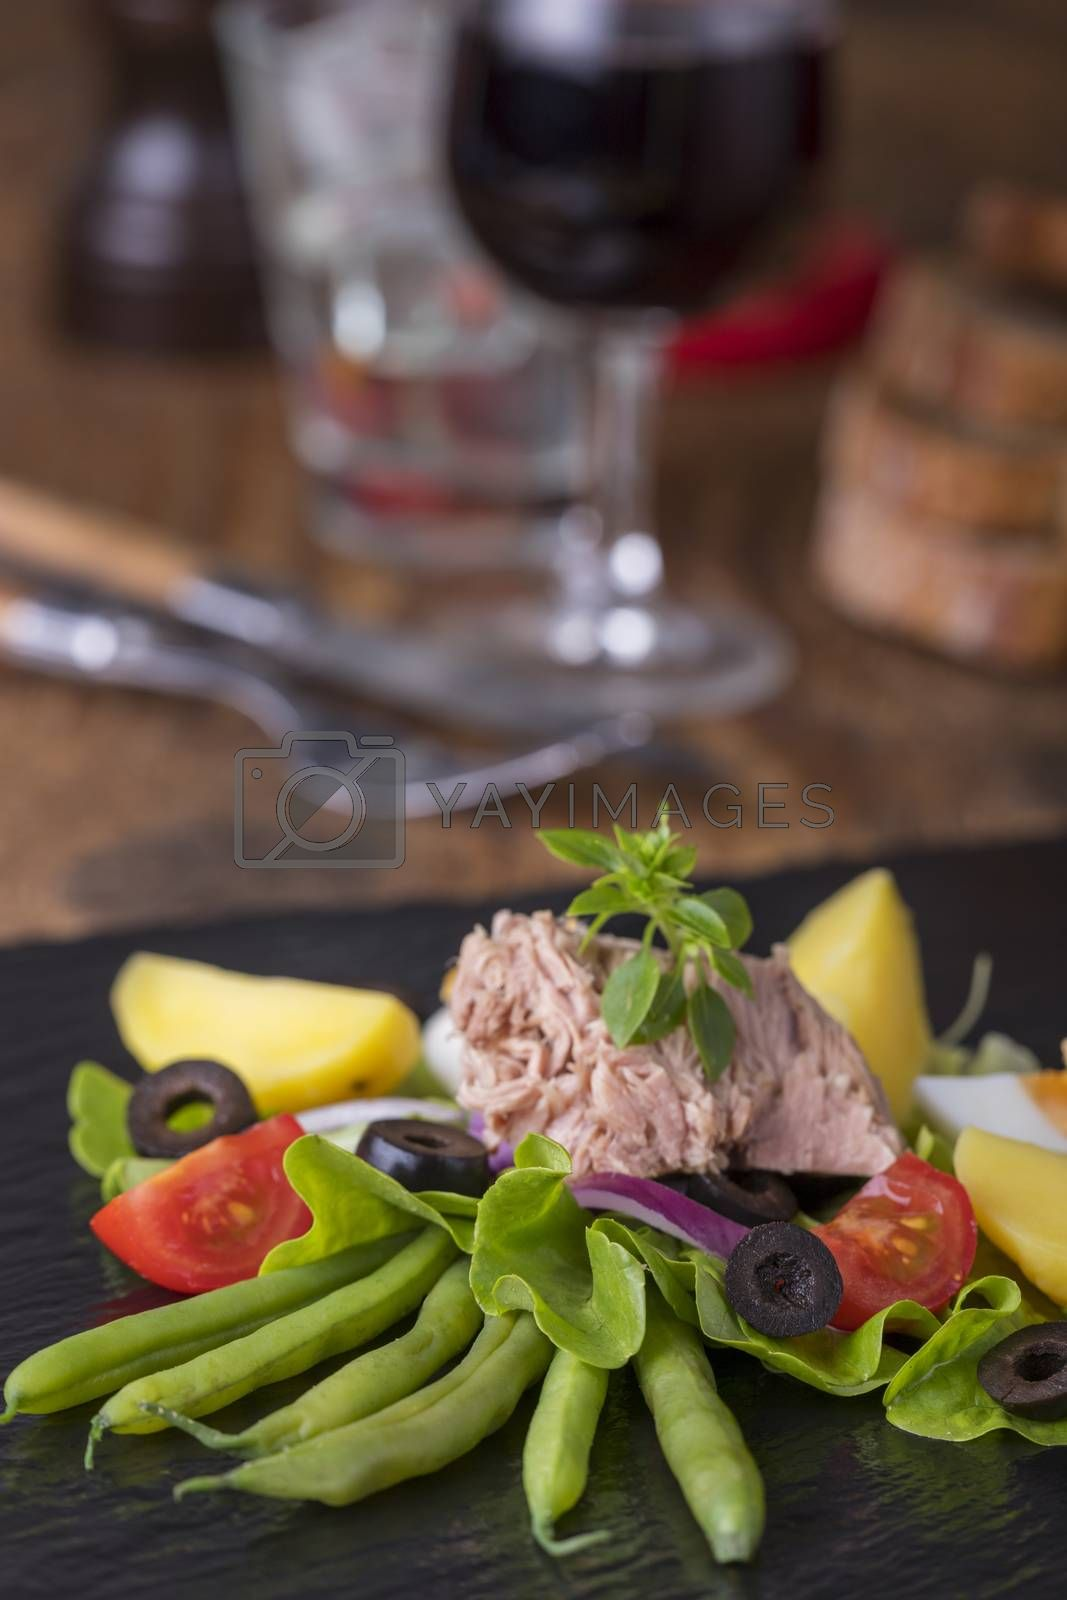 salad nicoise on a wooden background